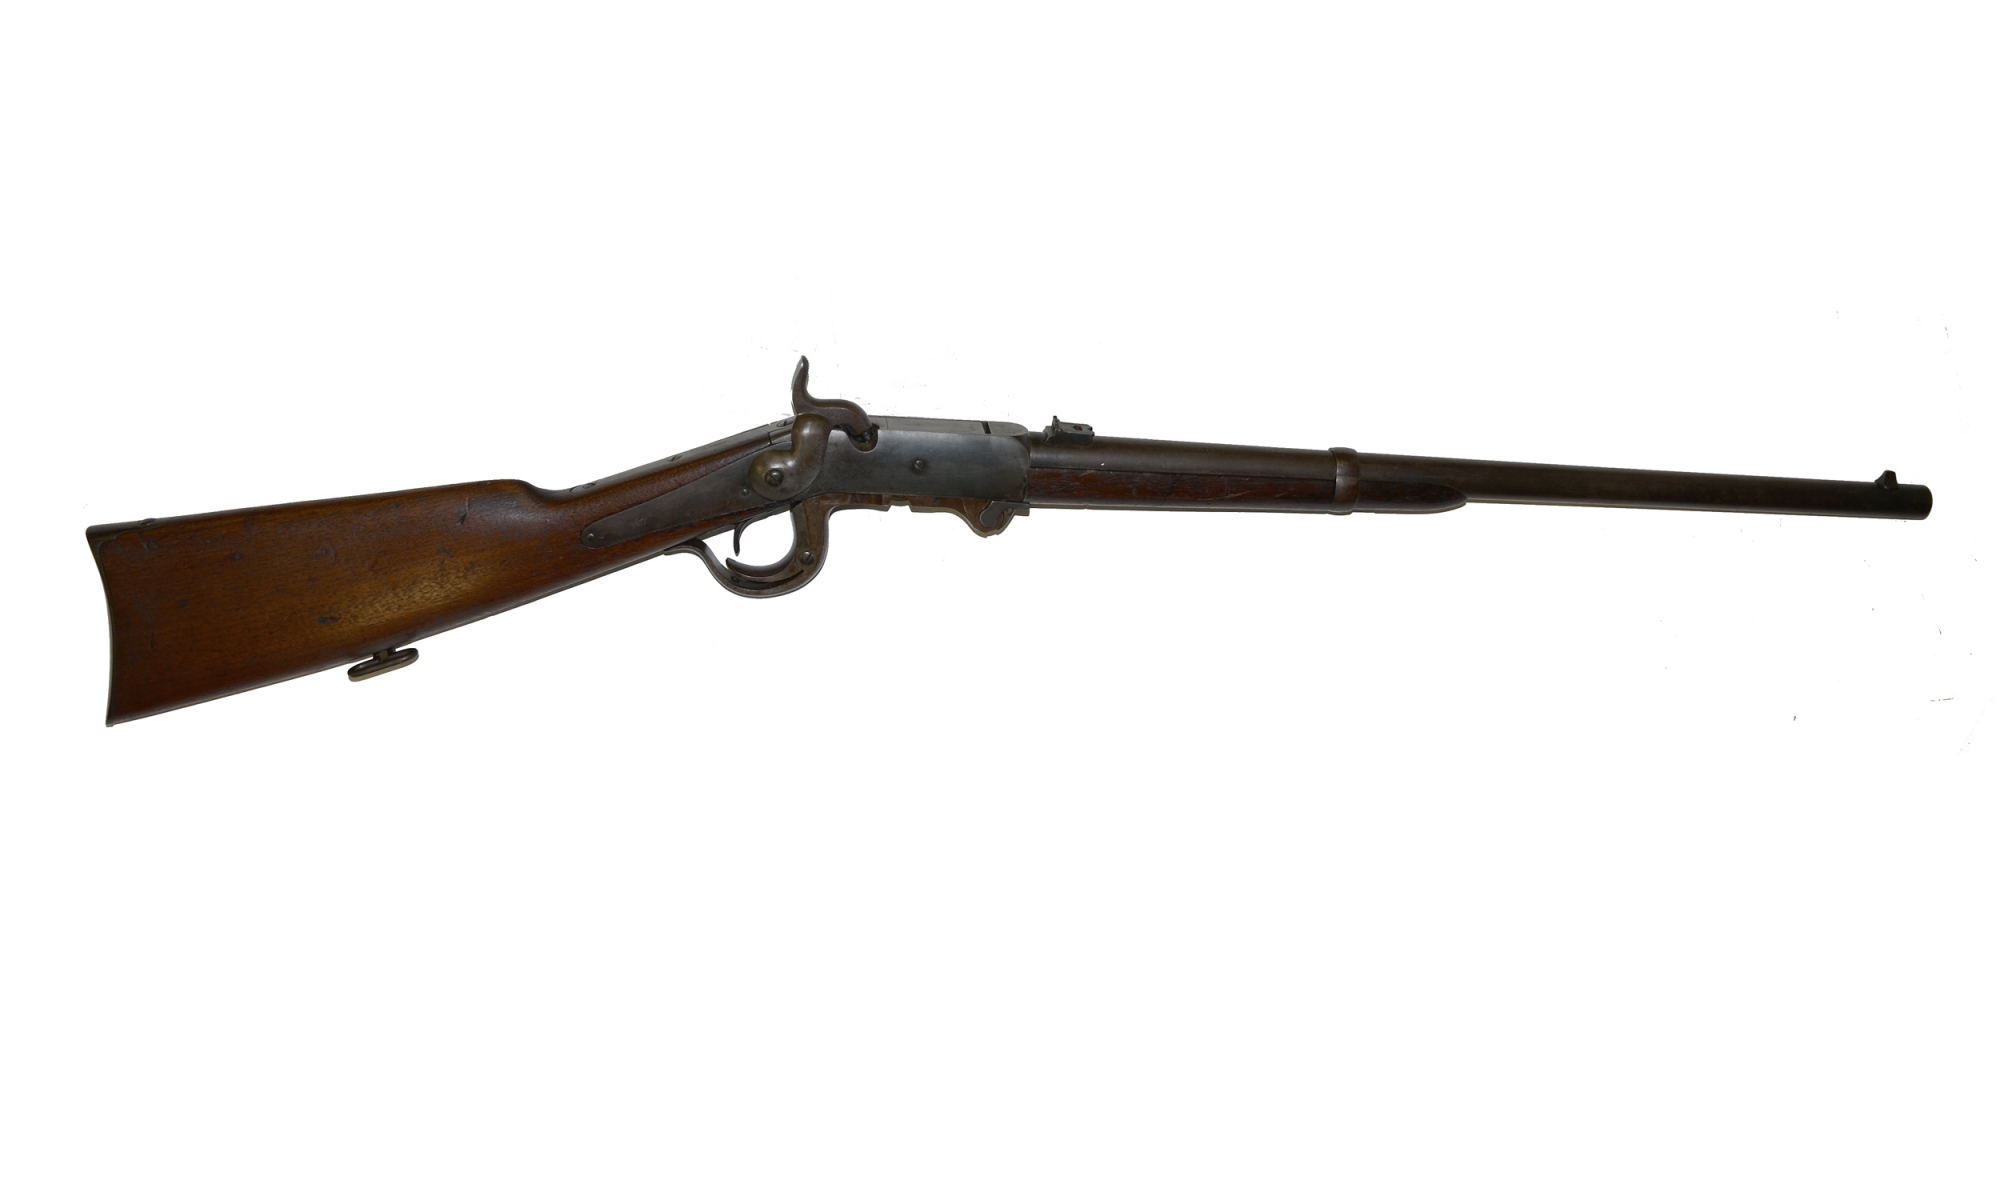 ORIGINAL 5TH MODEL BURNSIDE CARBINE WITH MIS-MATCHED SERIAL NUMBERS